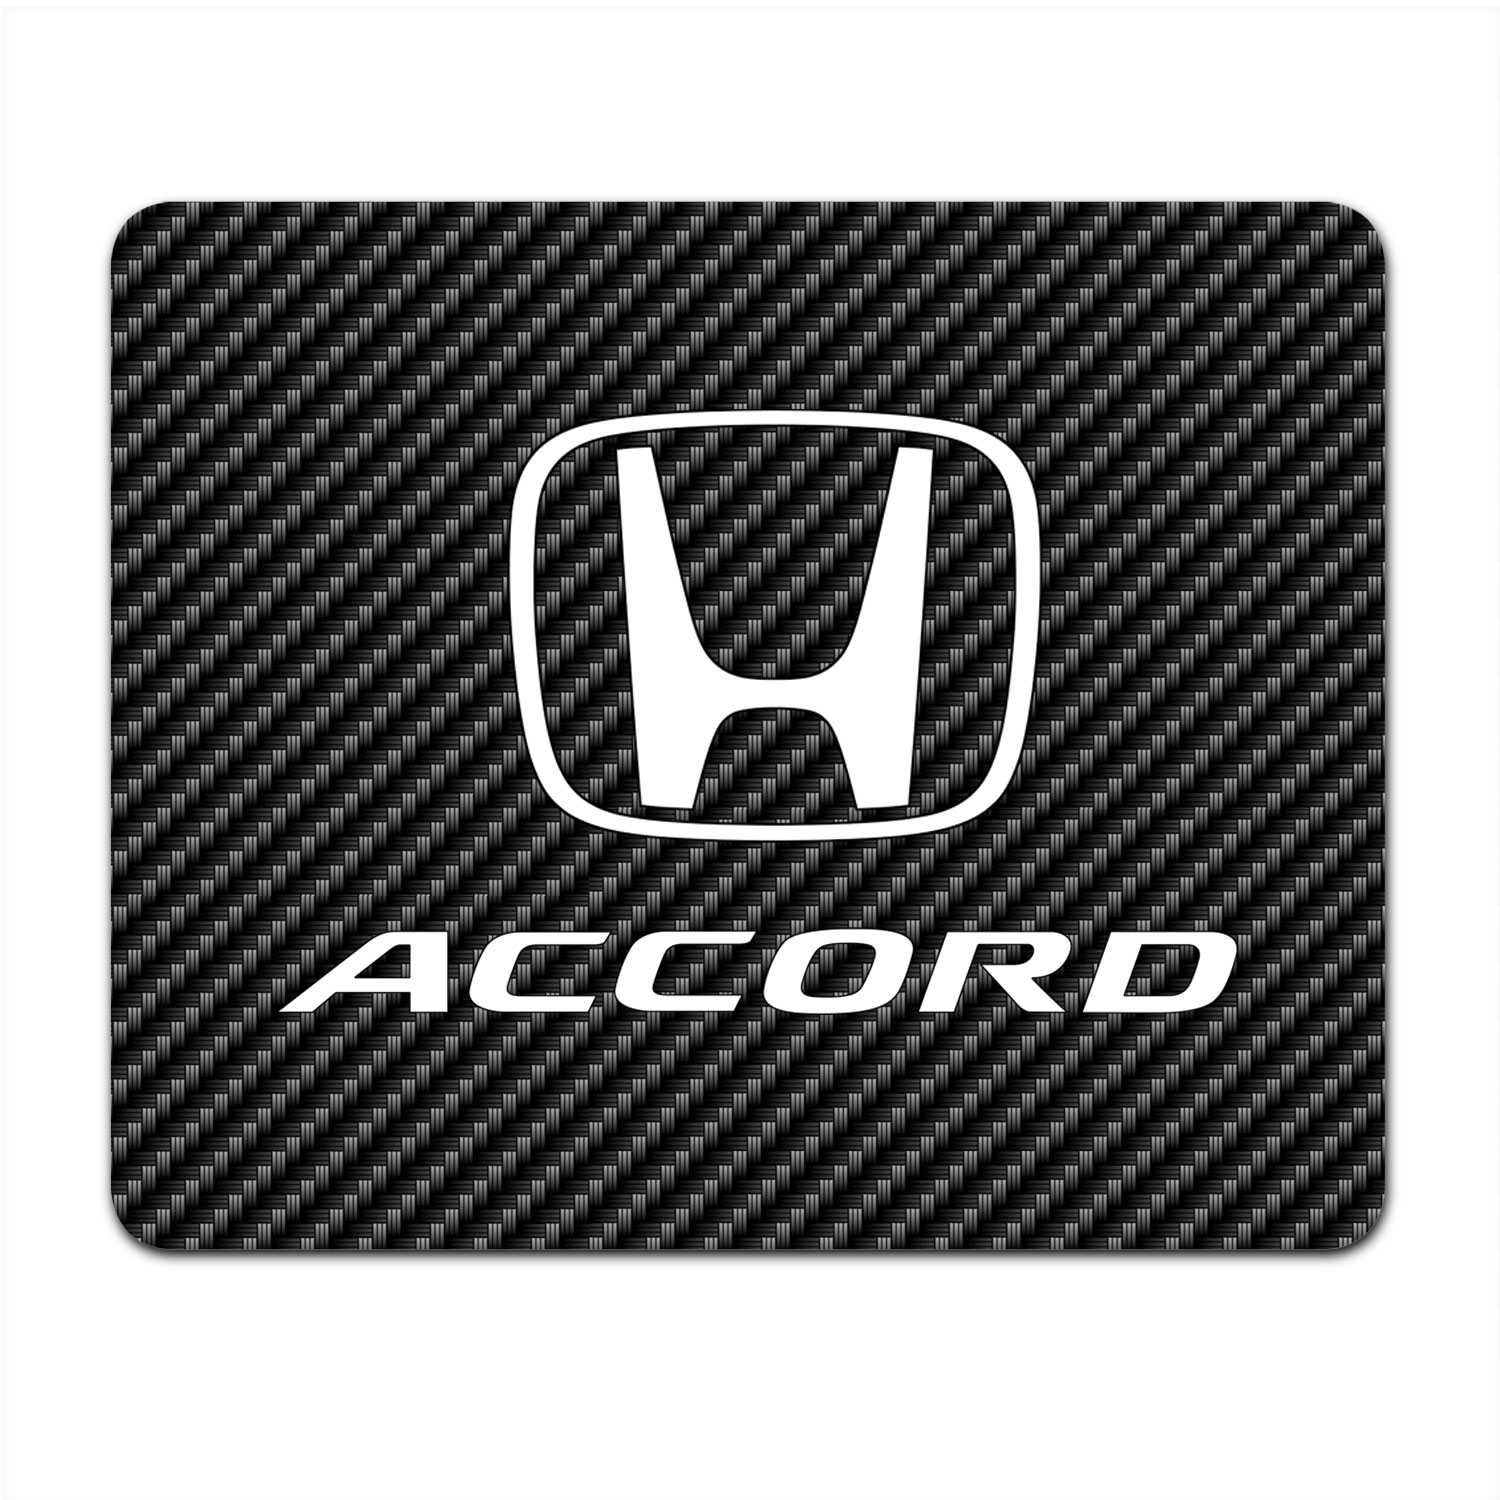 Honda Accord Black Carbon Fiber Texture Graphic PC Mouse Pad